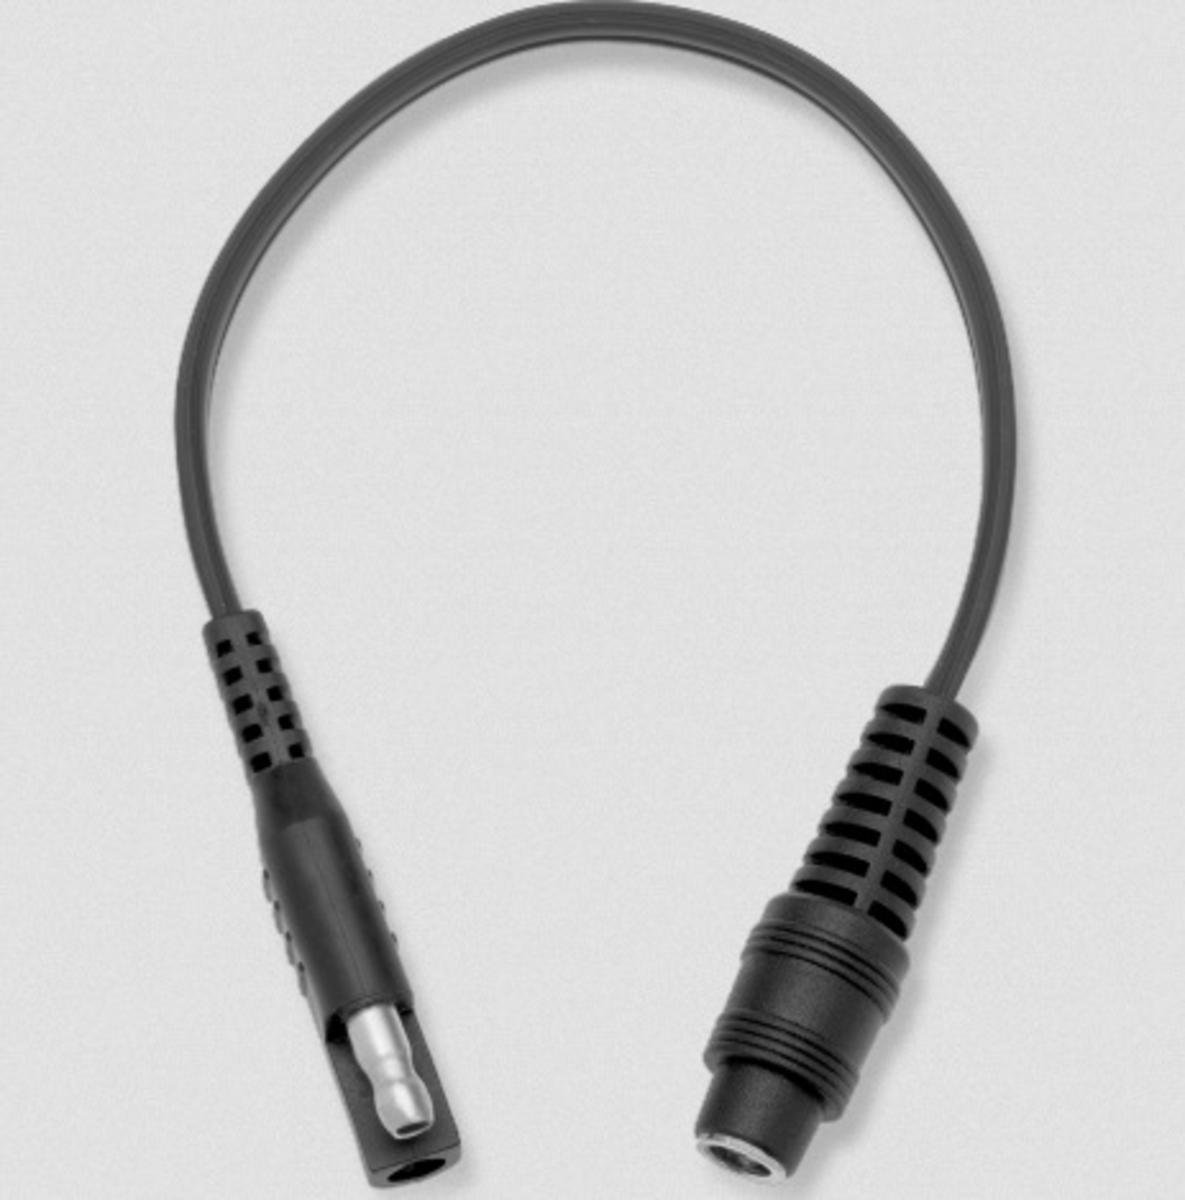 Gerbing 12V Coax Female to SAE Cable